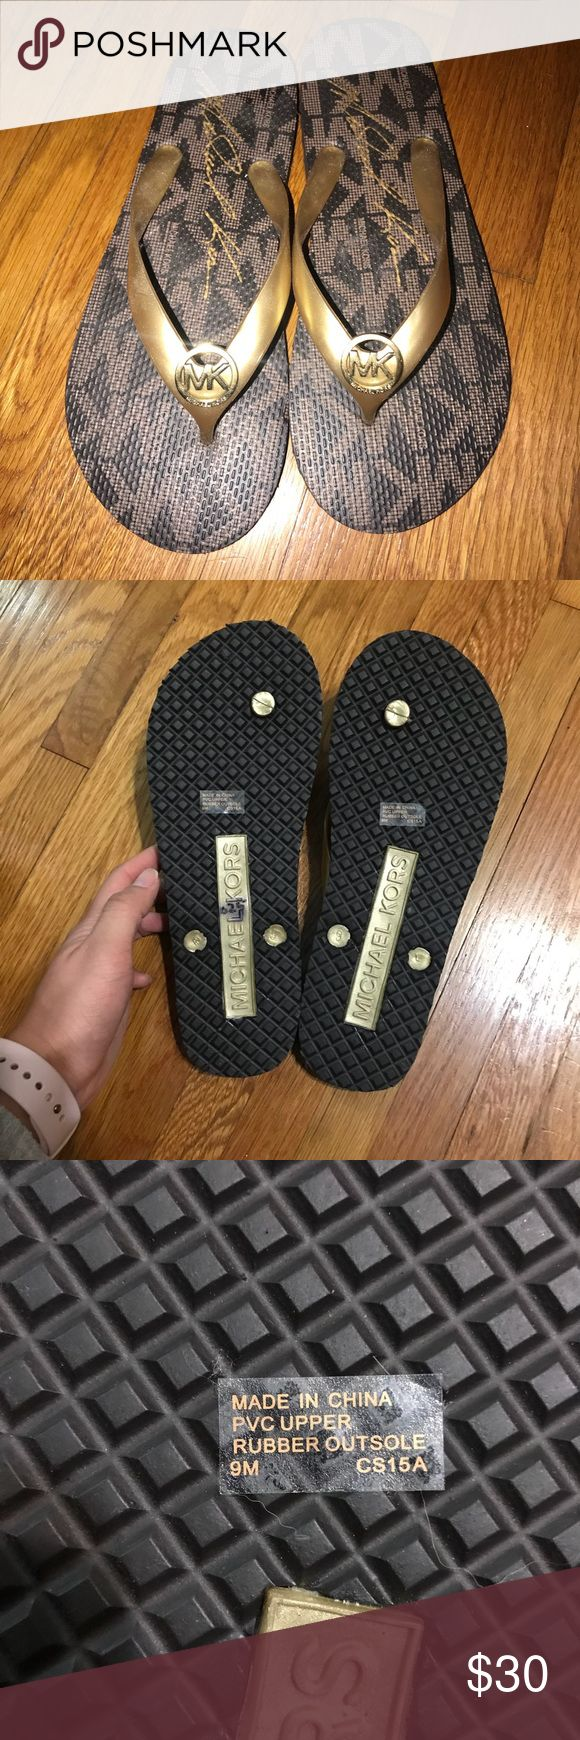 Brand New Michael Kors flip flops Brand new Michael Kors flip flop sandals. Size 9 Michael Kors Shoes Sandals